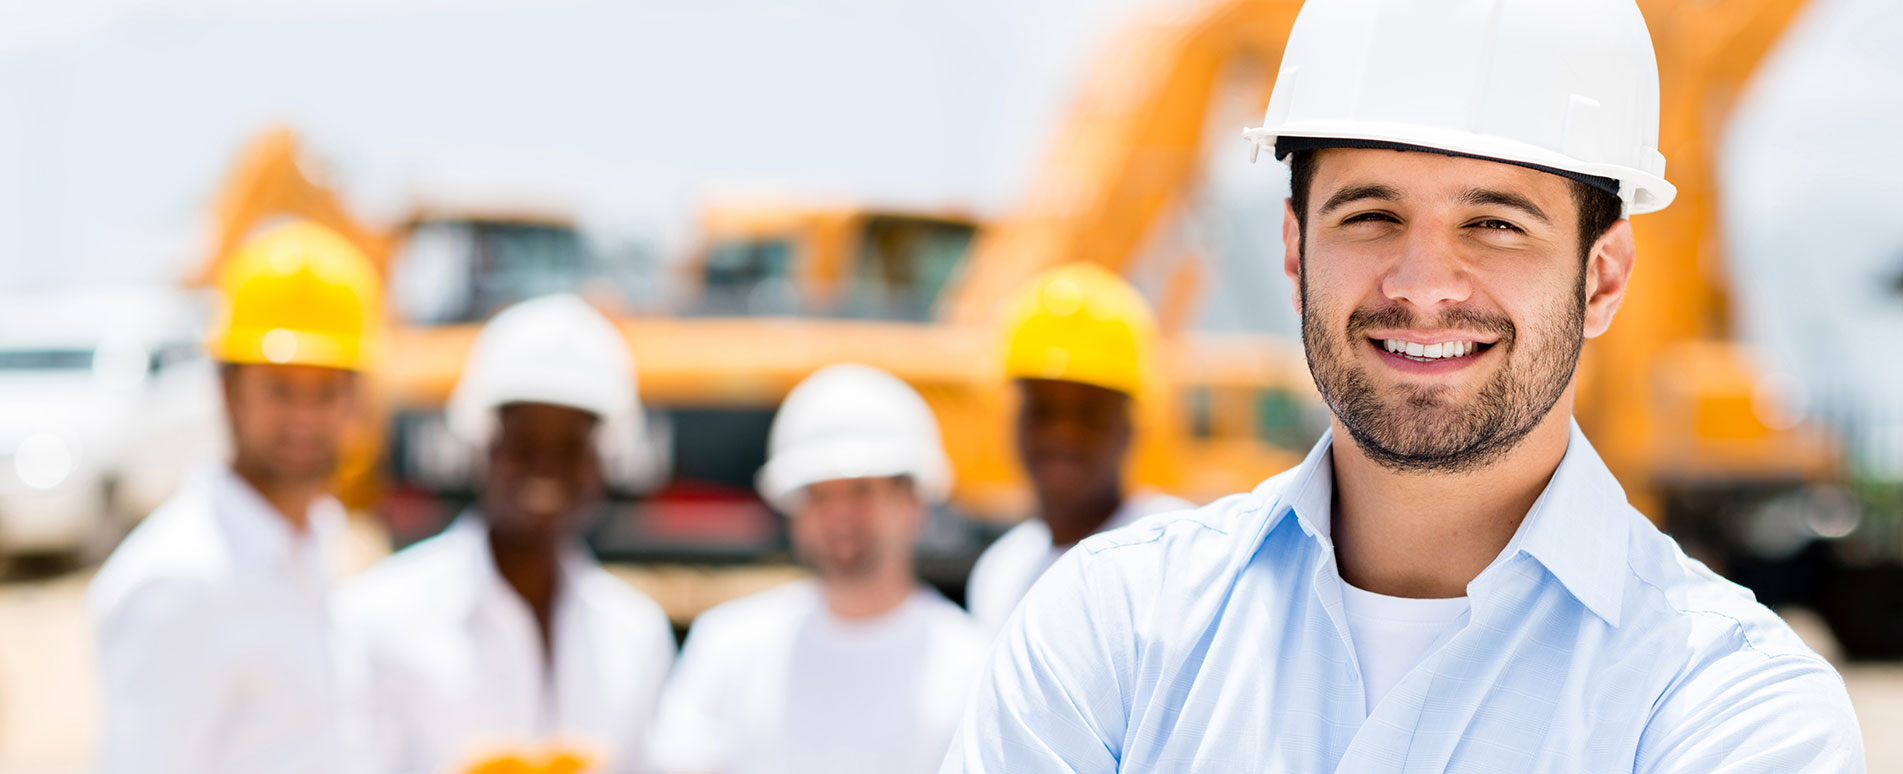 Texas Workers Compensation coverage